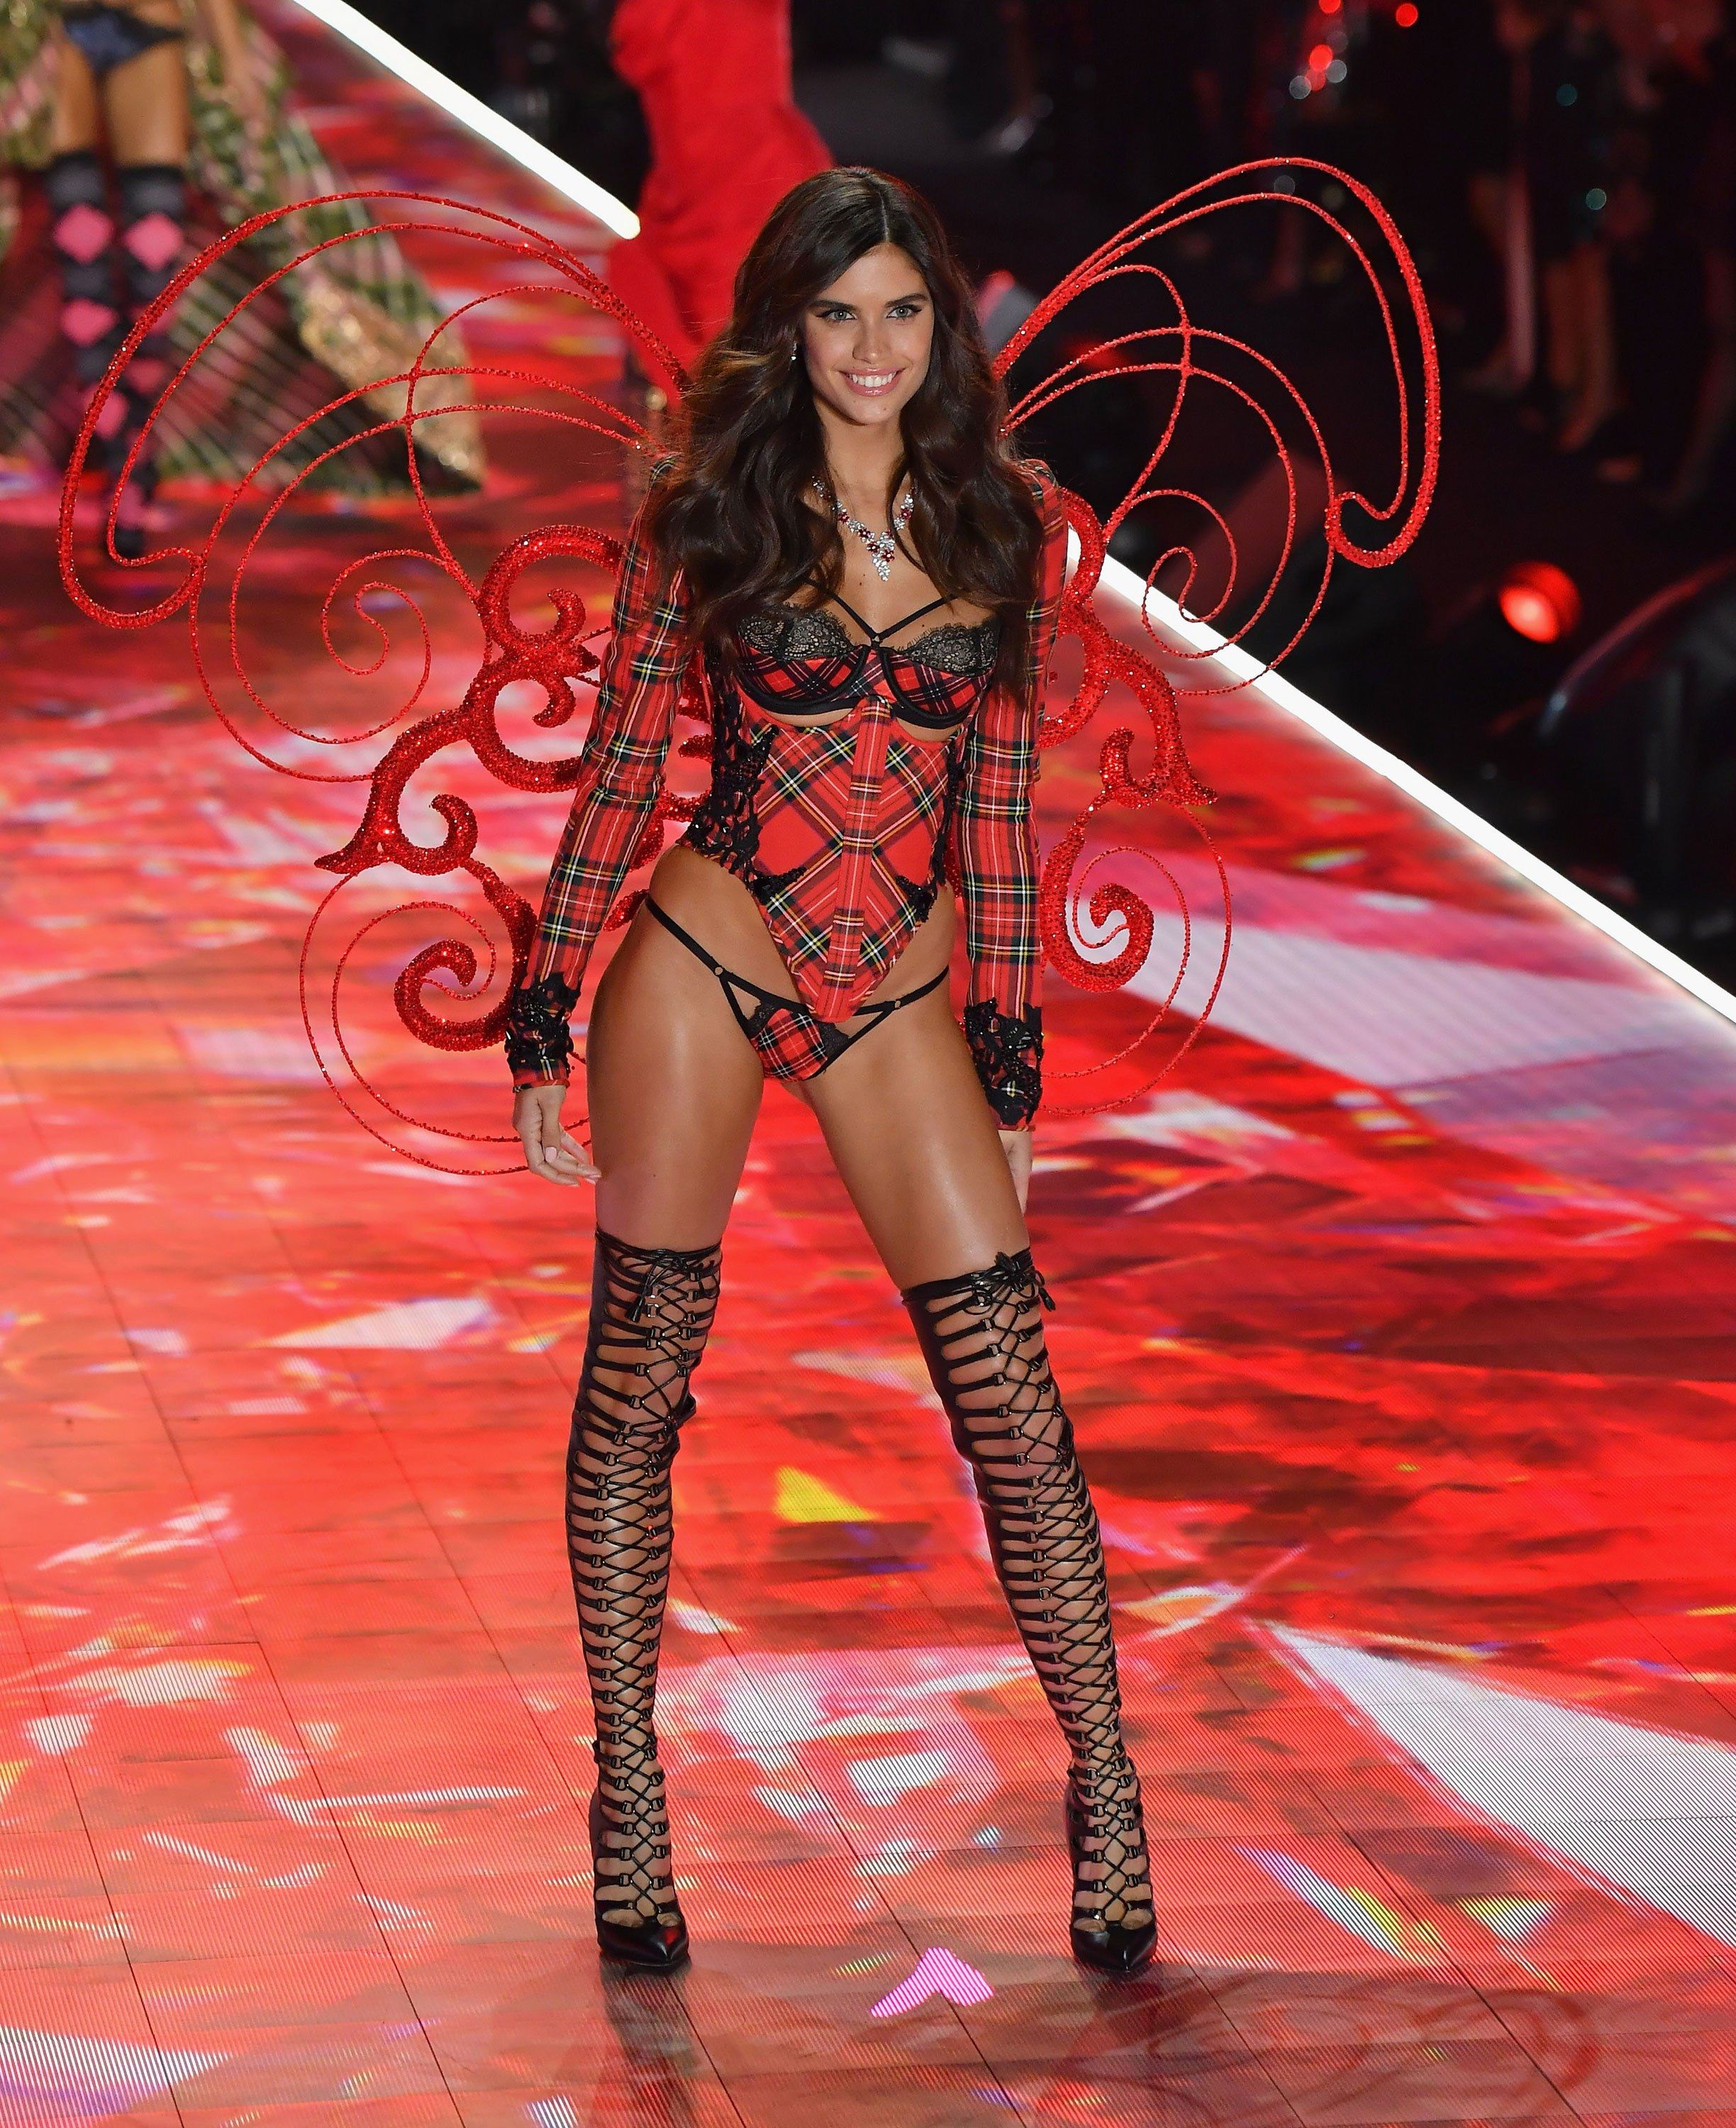 10 Victoria's Secret Models Share The One Beauty Product